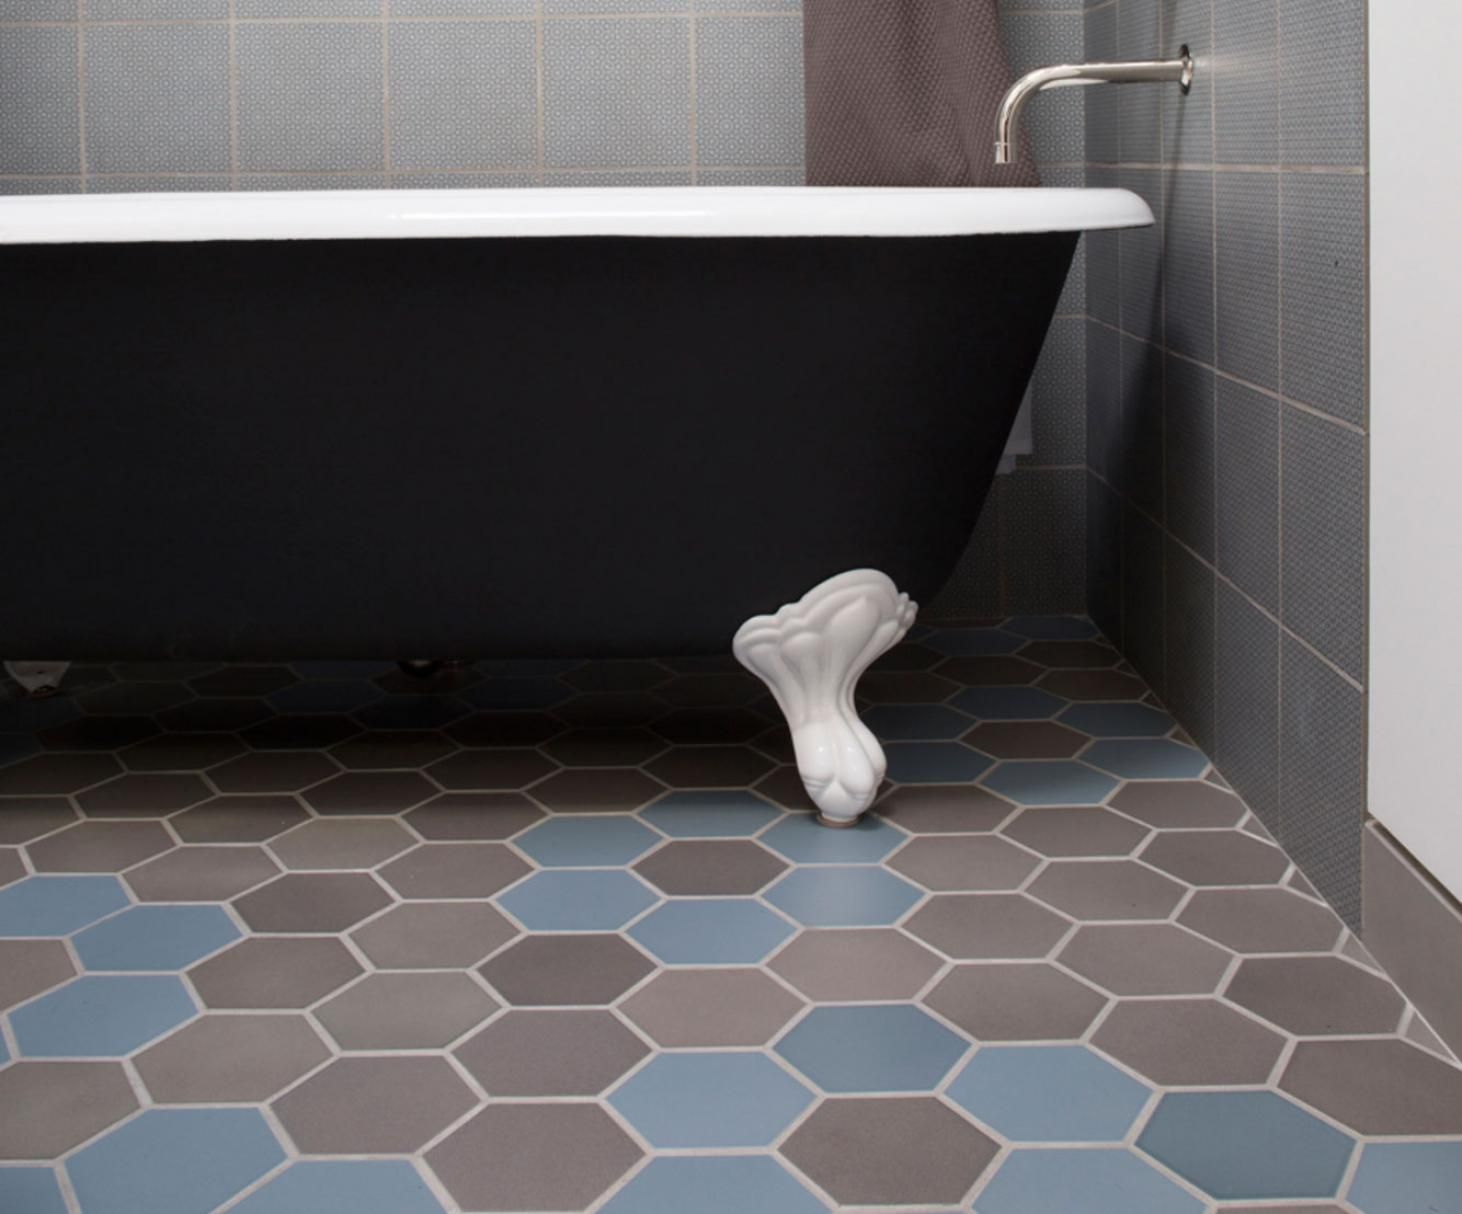 Mixing and matching shapes and glazes is harmonious in this mixing and matching shapes and glazes is harmonious in this bathroom features hex tile in blue fog variation and shade light variation heath ceramics doublecrazyfo Images